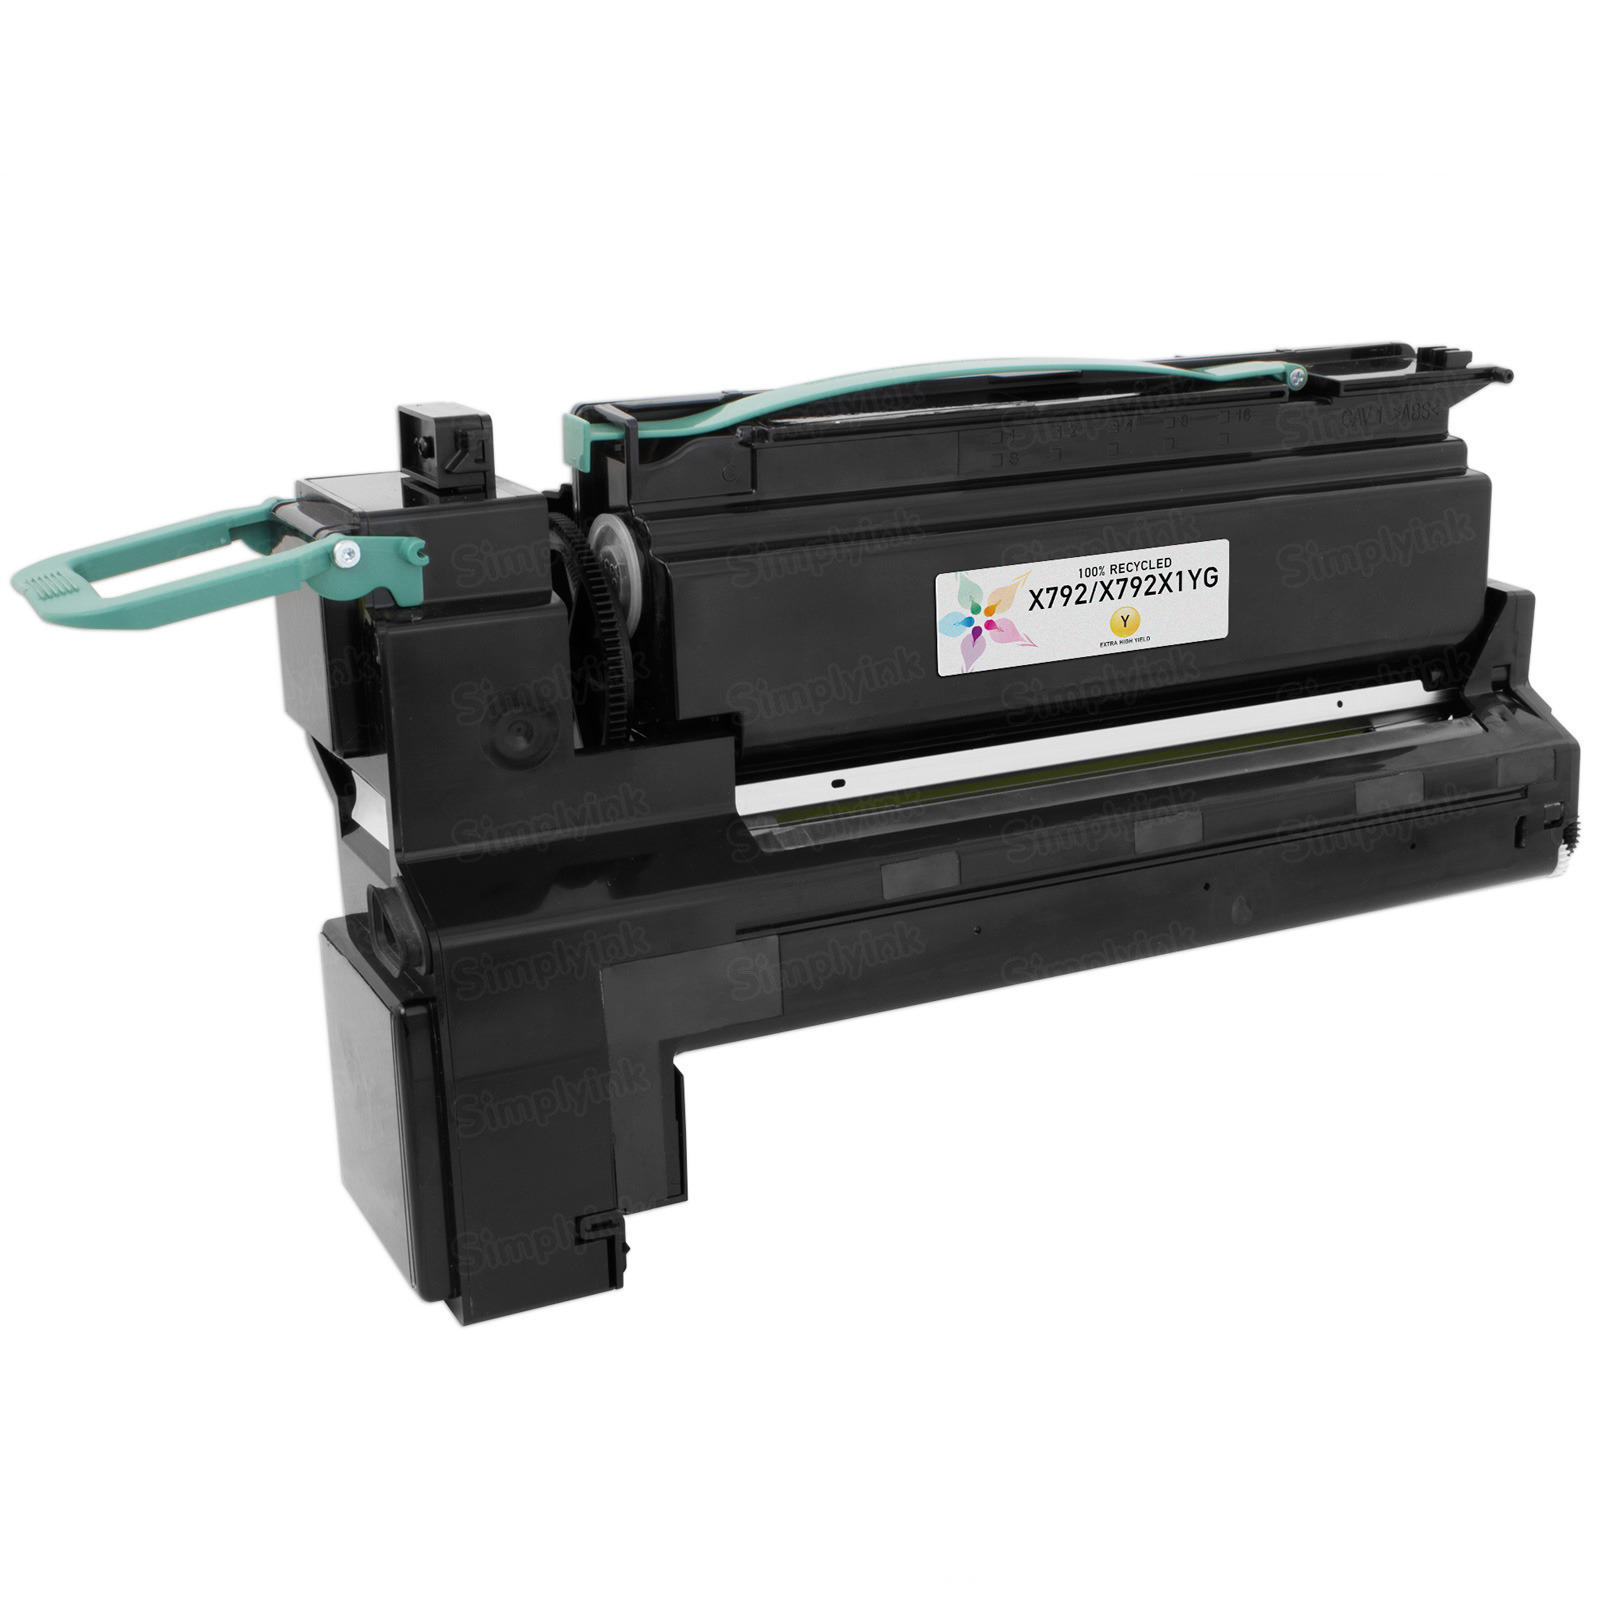 Lexmark Remanufactured Extra HY Yellow Toner, X792X1YG (X792)